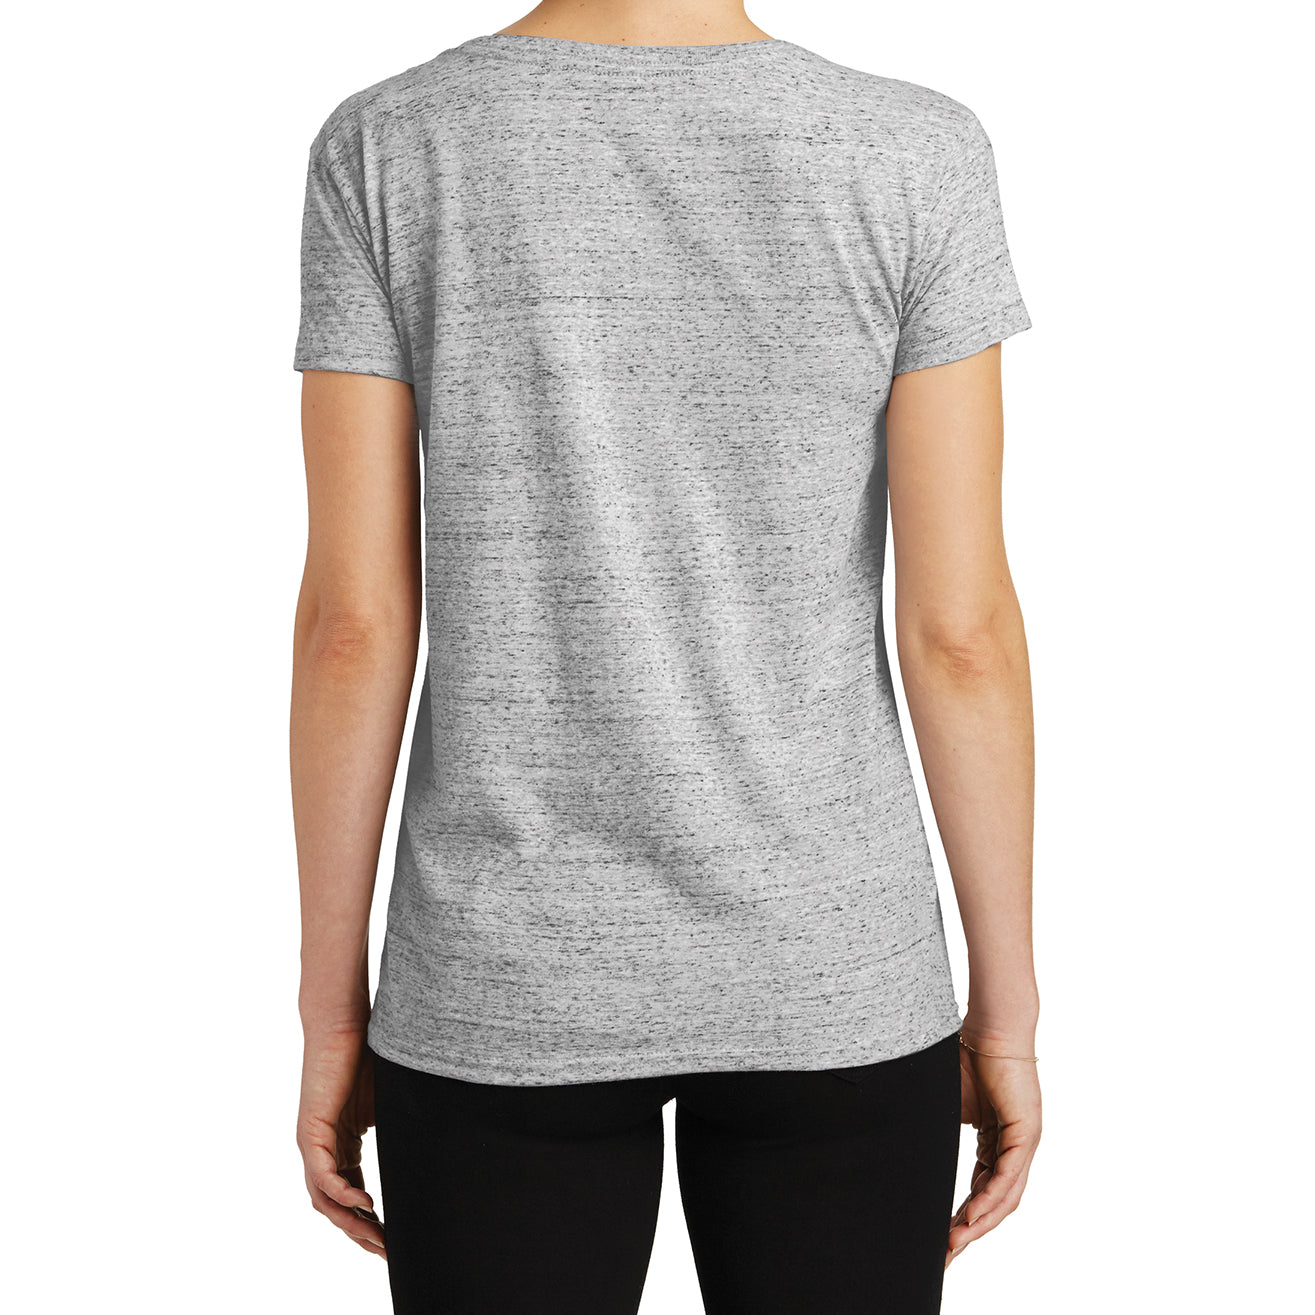 Womens Cosmic Relaxed V-Neck Tee - White/Black Cosmic - Back